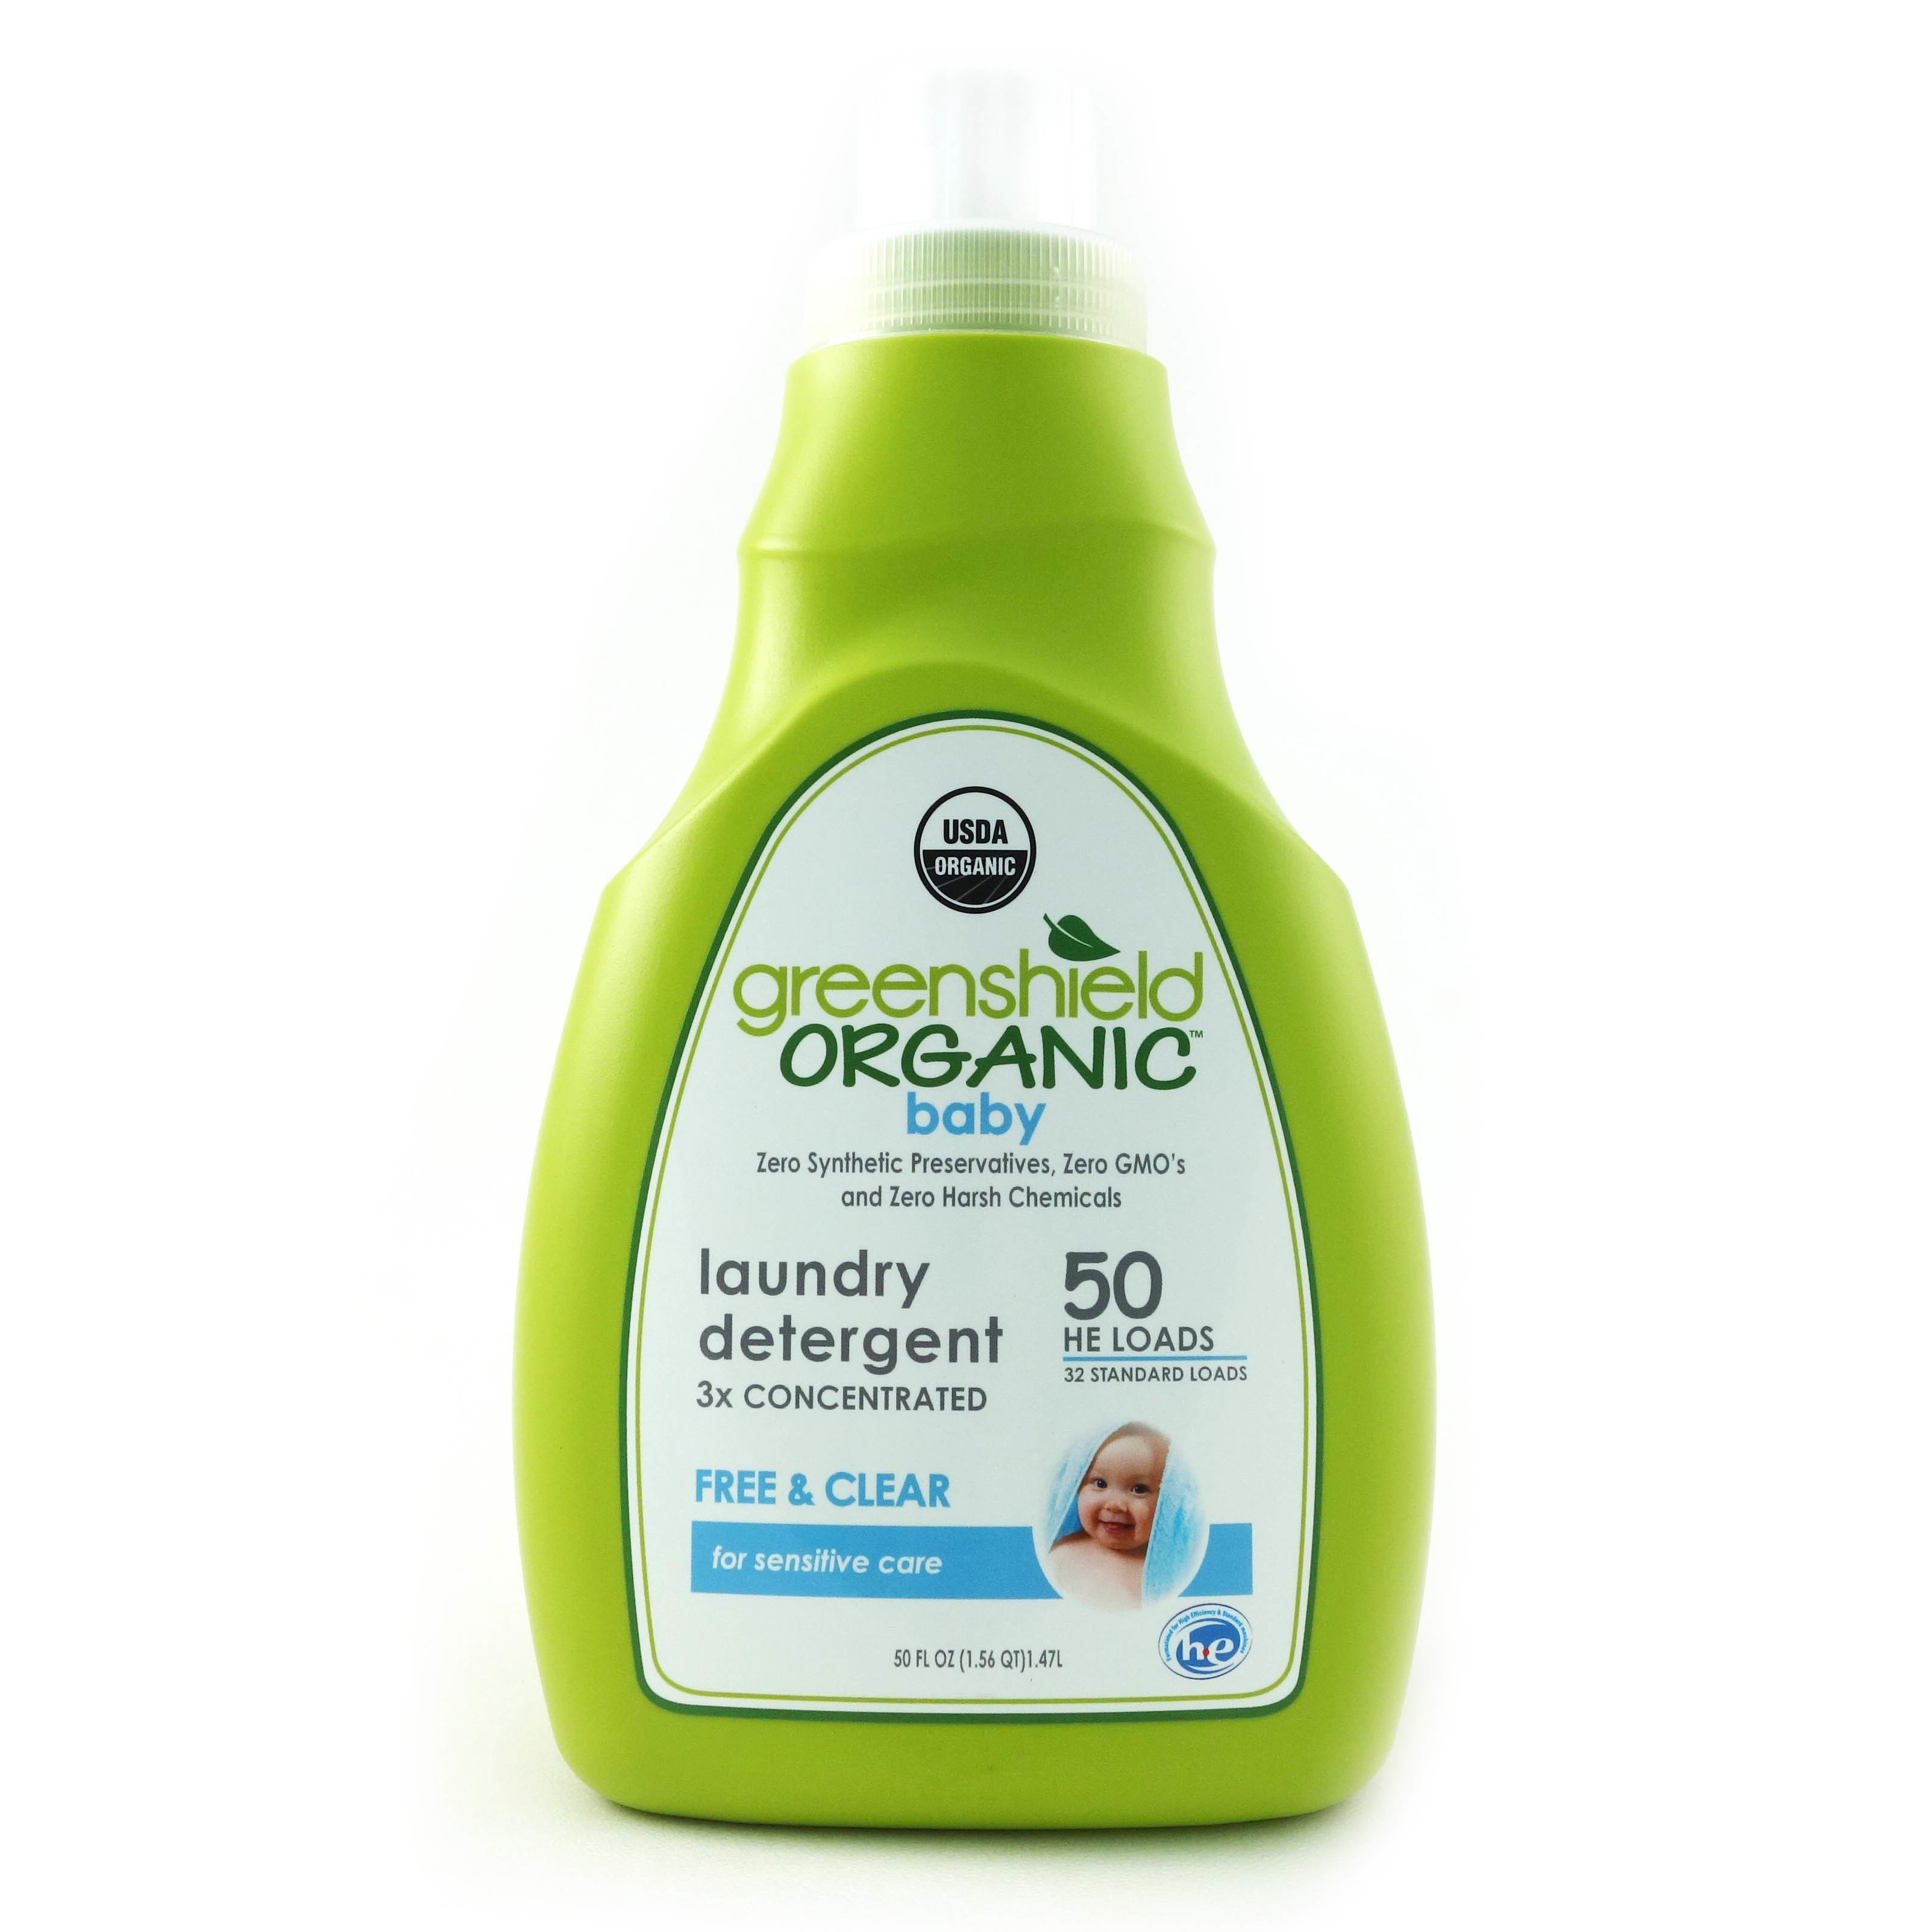 Greenshield Organic Laundry Detergent For Babies Free